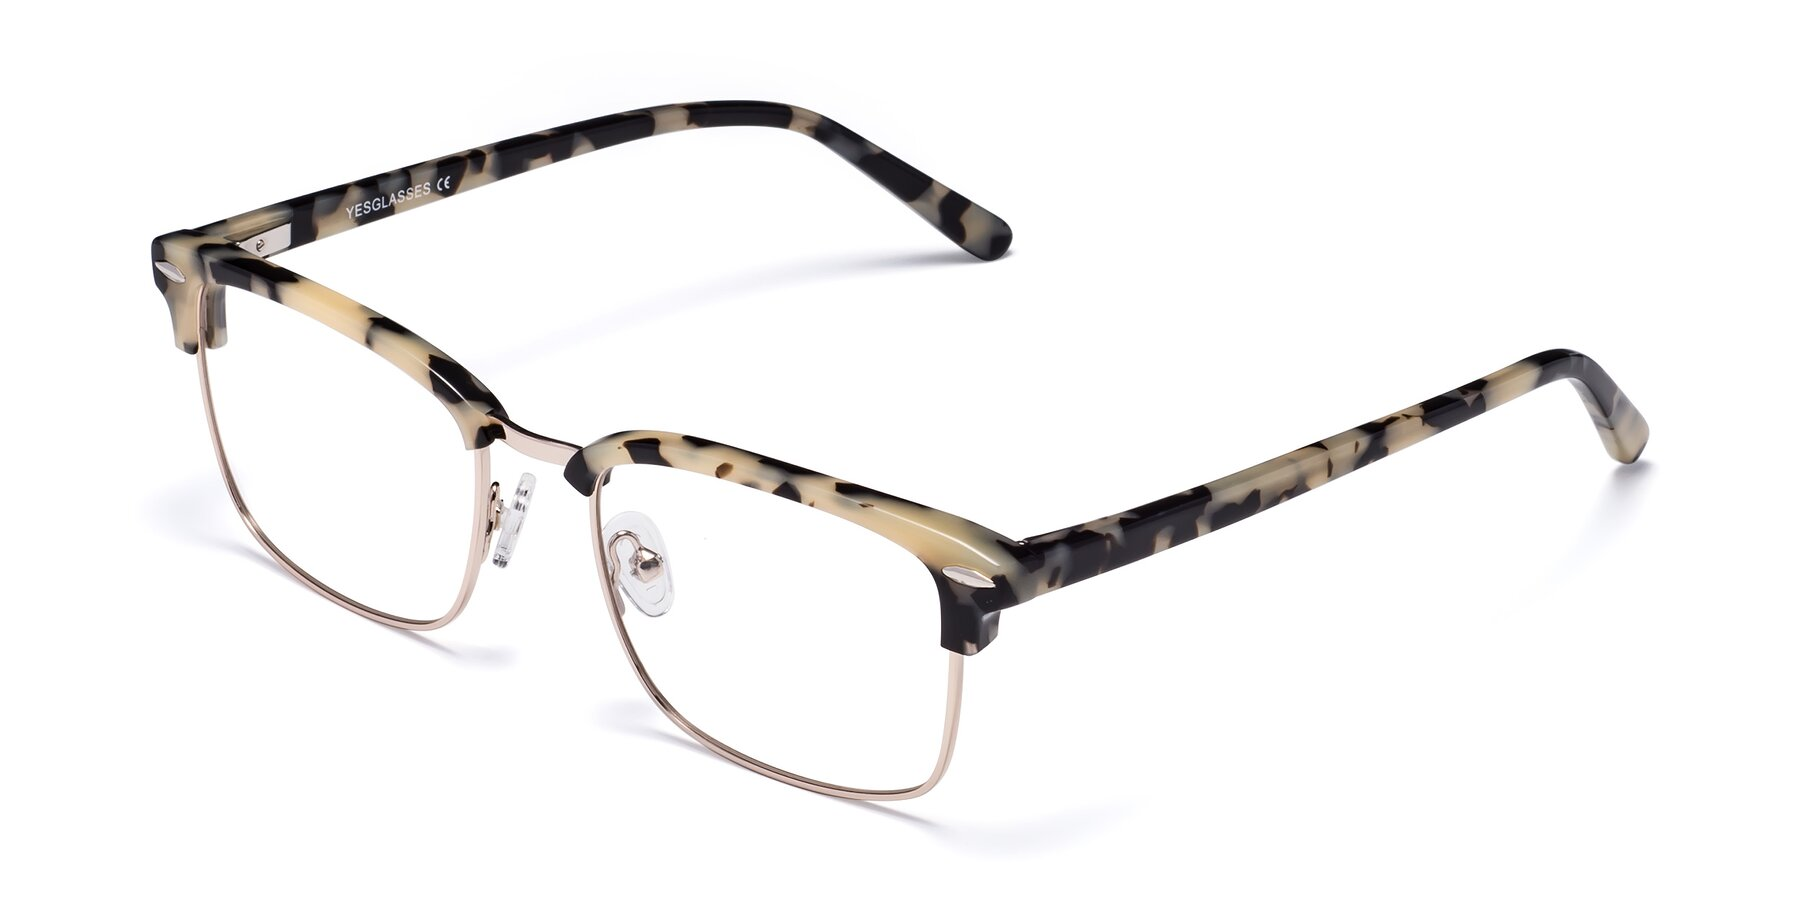 Angle of 17464 in Tortoise-Gold with Clear Blue Light Blocking Lenses